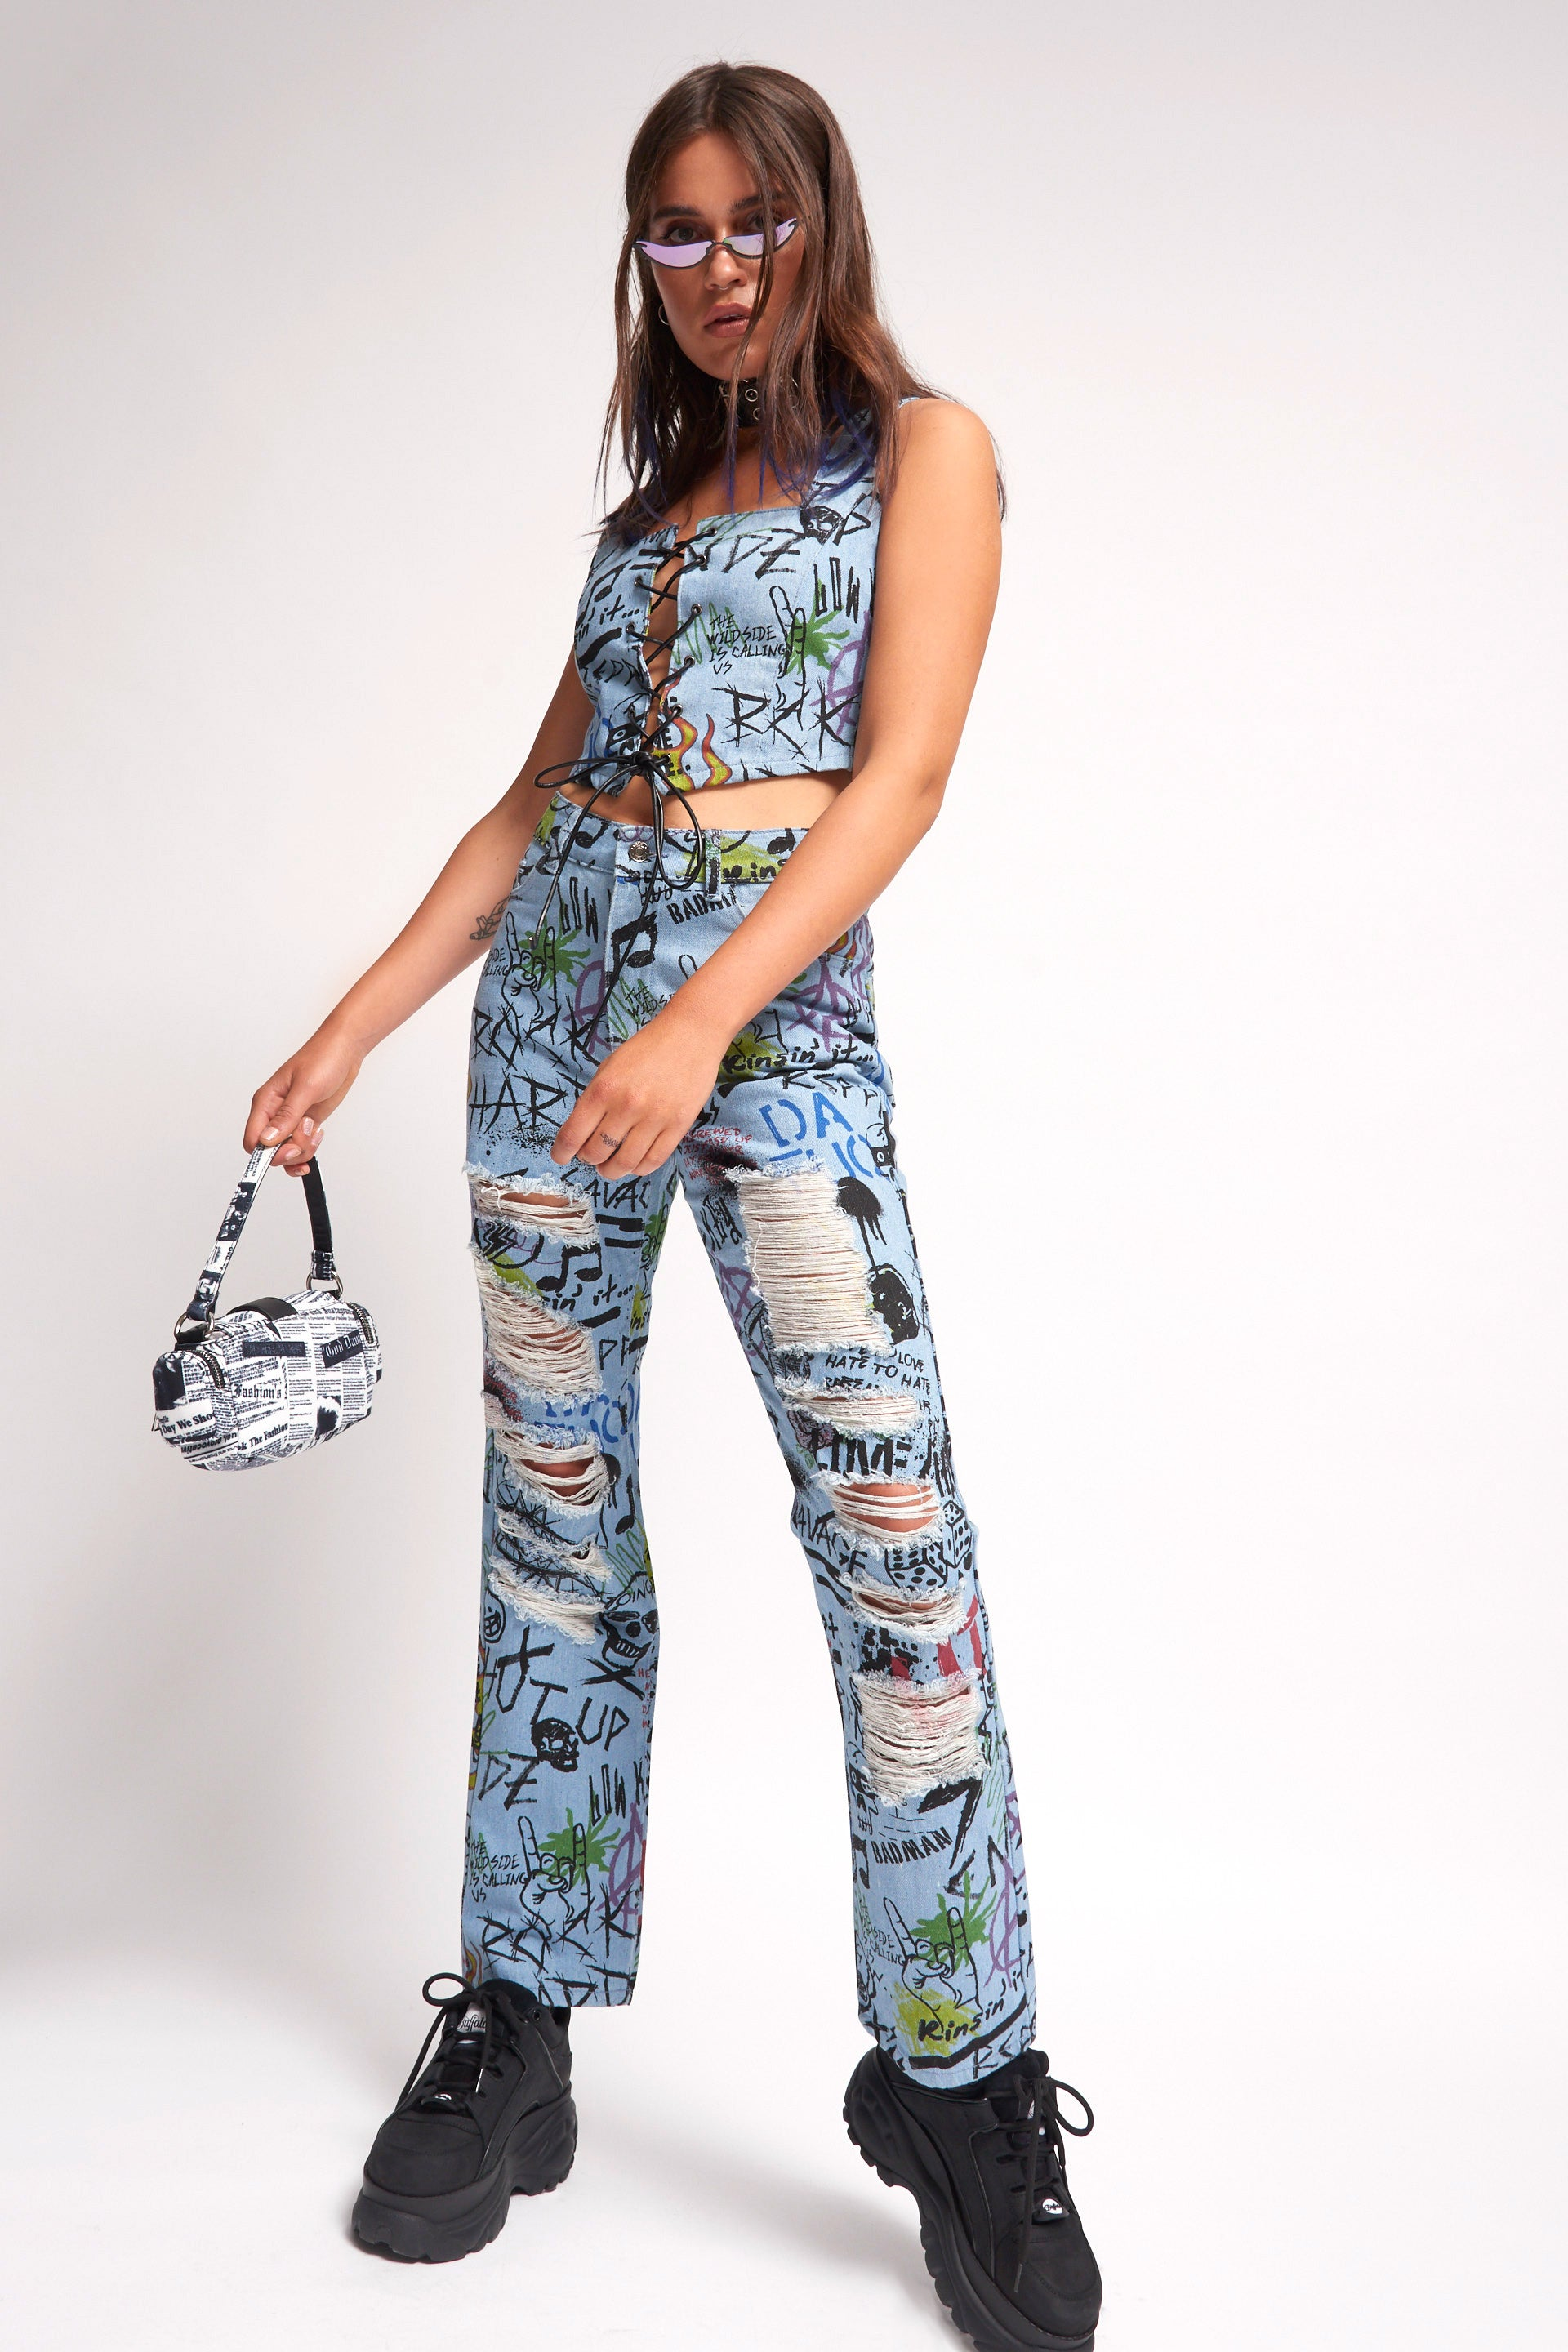 Graffiti Print Denim Corset Top